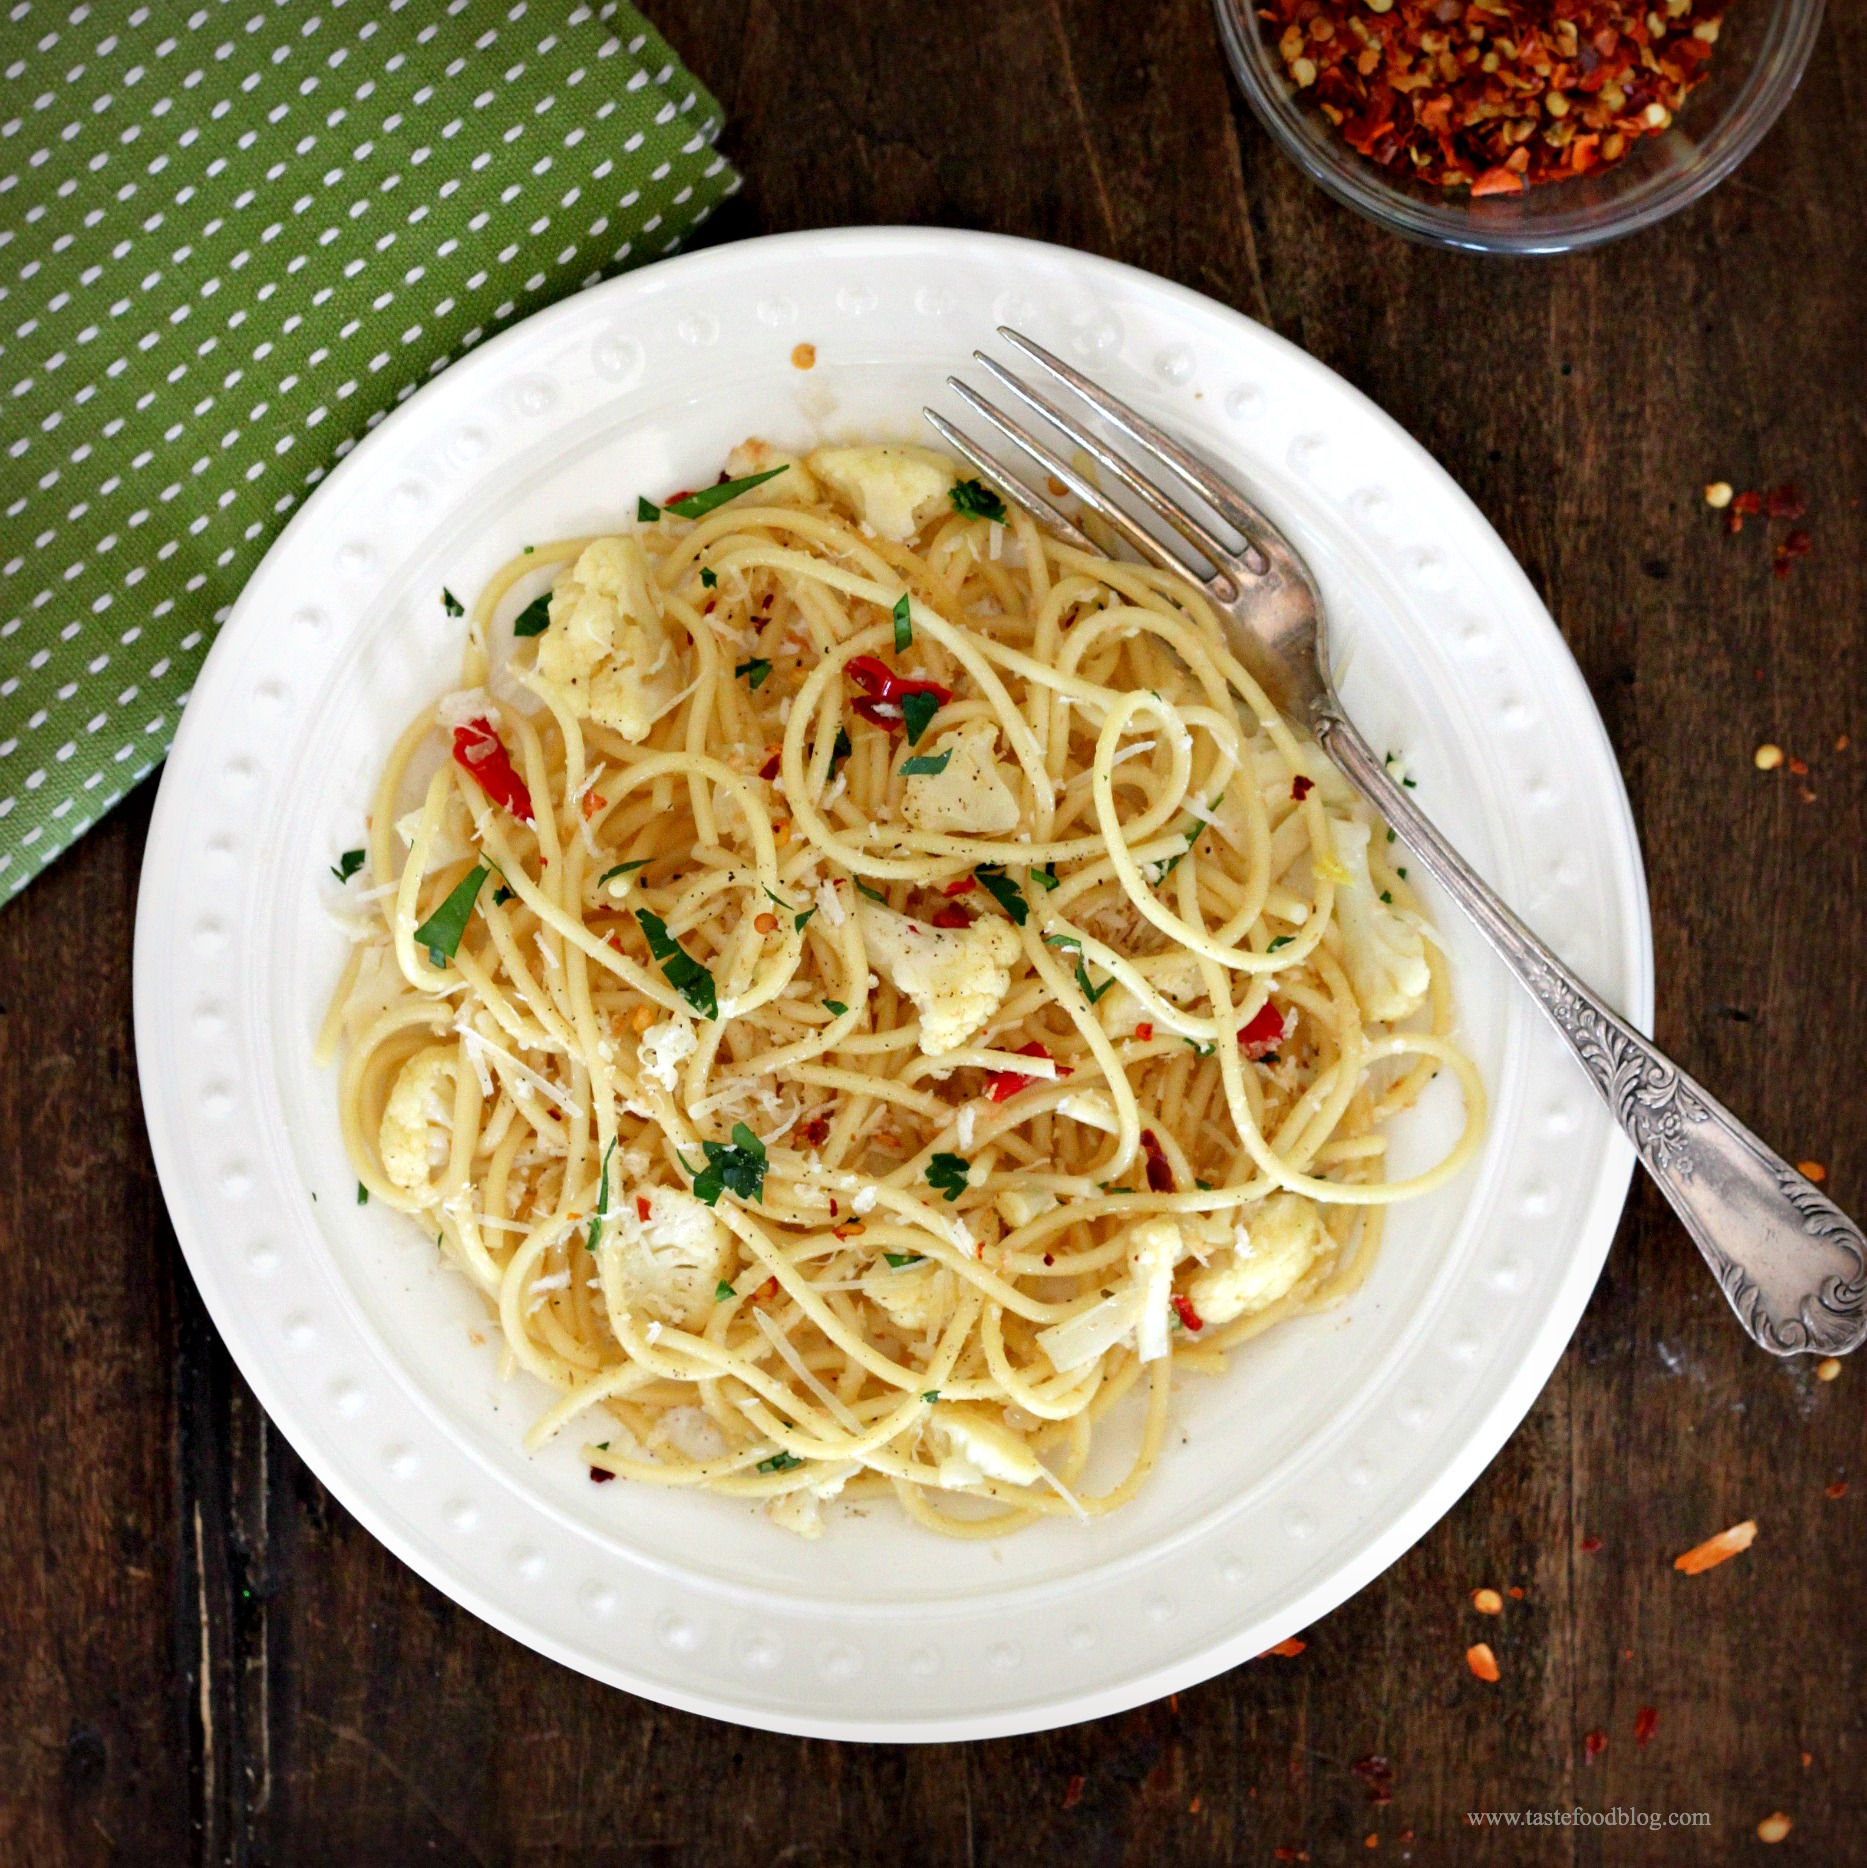 Spaghetti with Cauliflower, Chile and Parsley Gremolata | TasteFood